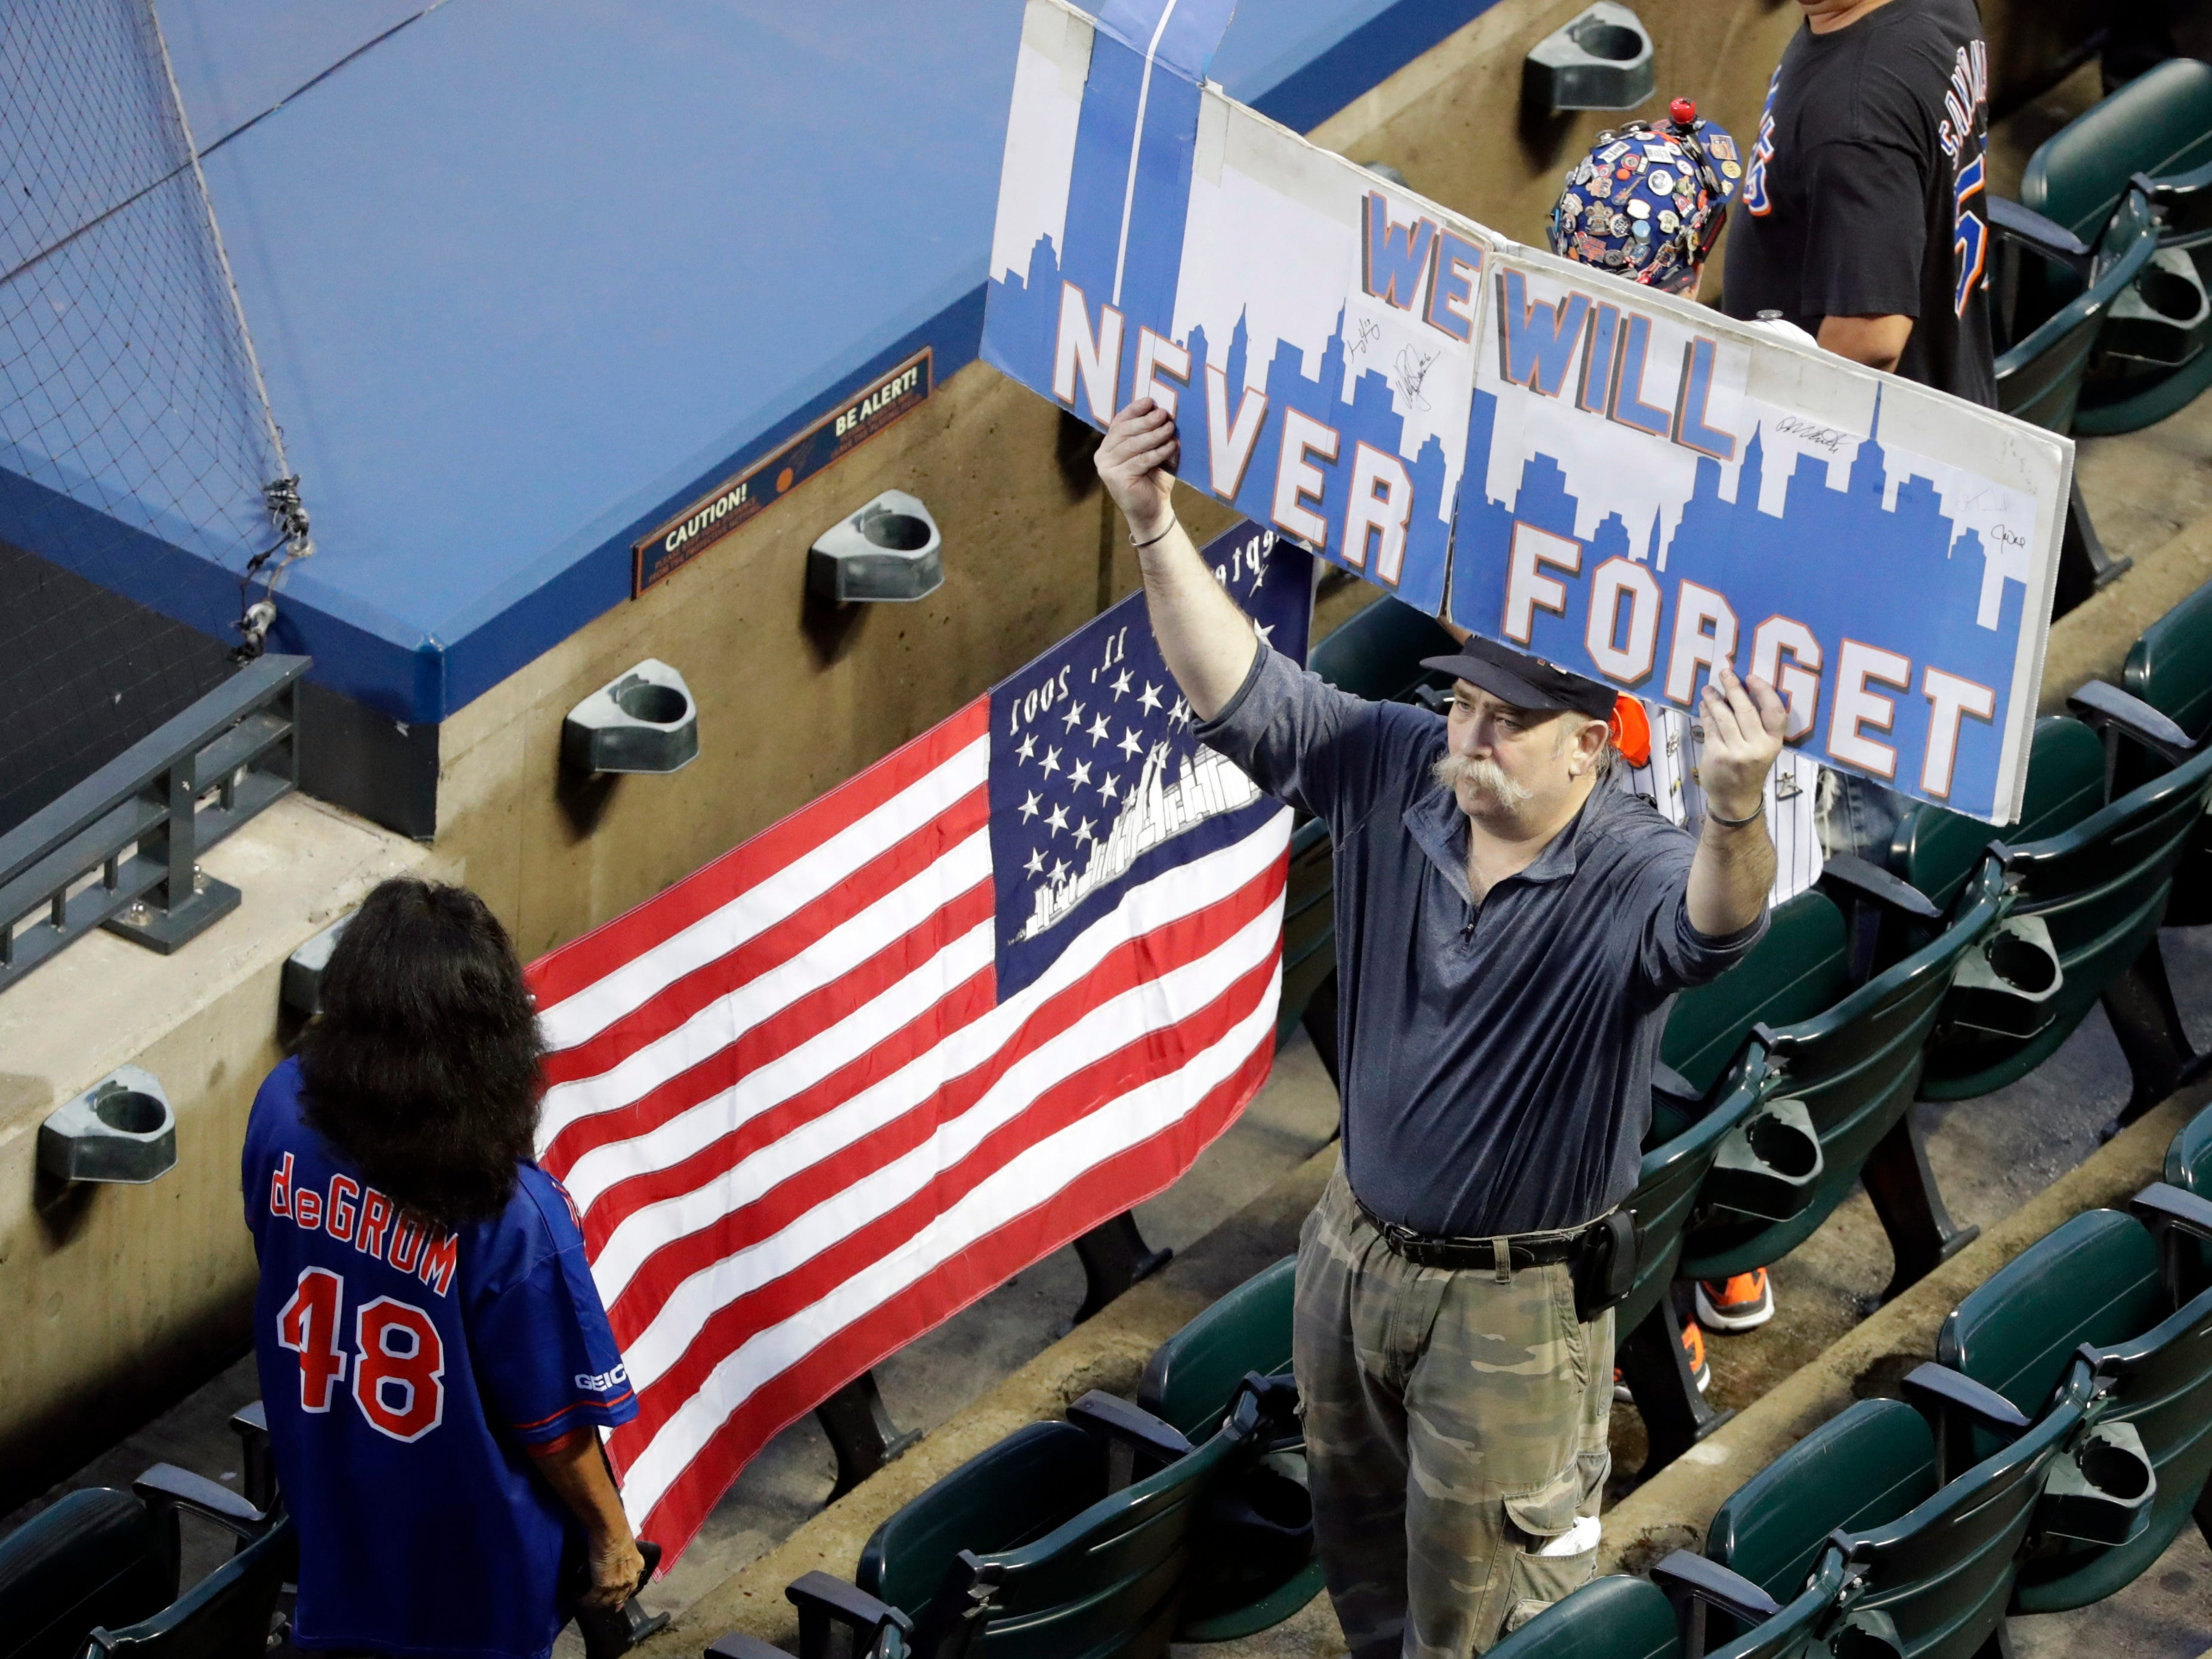 Fans hold up signs before the start of a baseball game between the New York Mets and the Miami Marlins, Tuesday, Sept. 11, 2018, in New York.